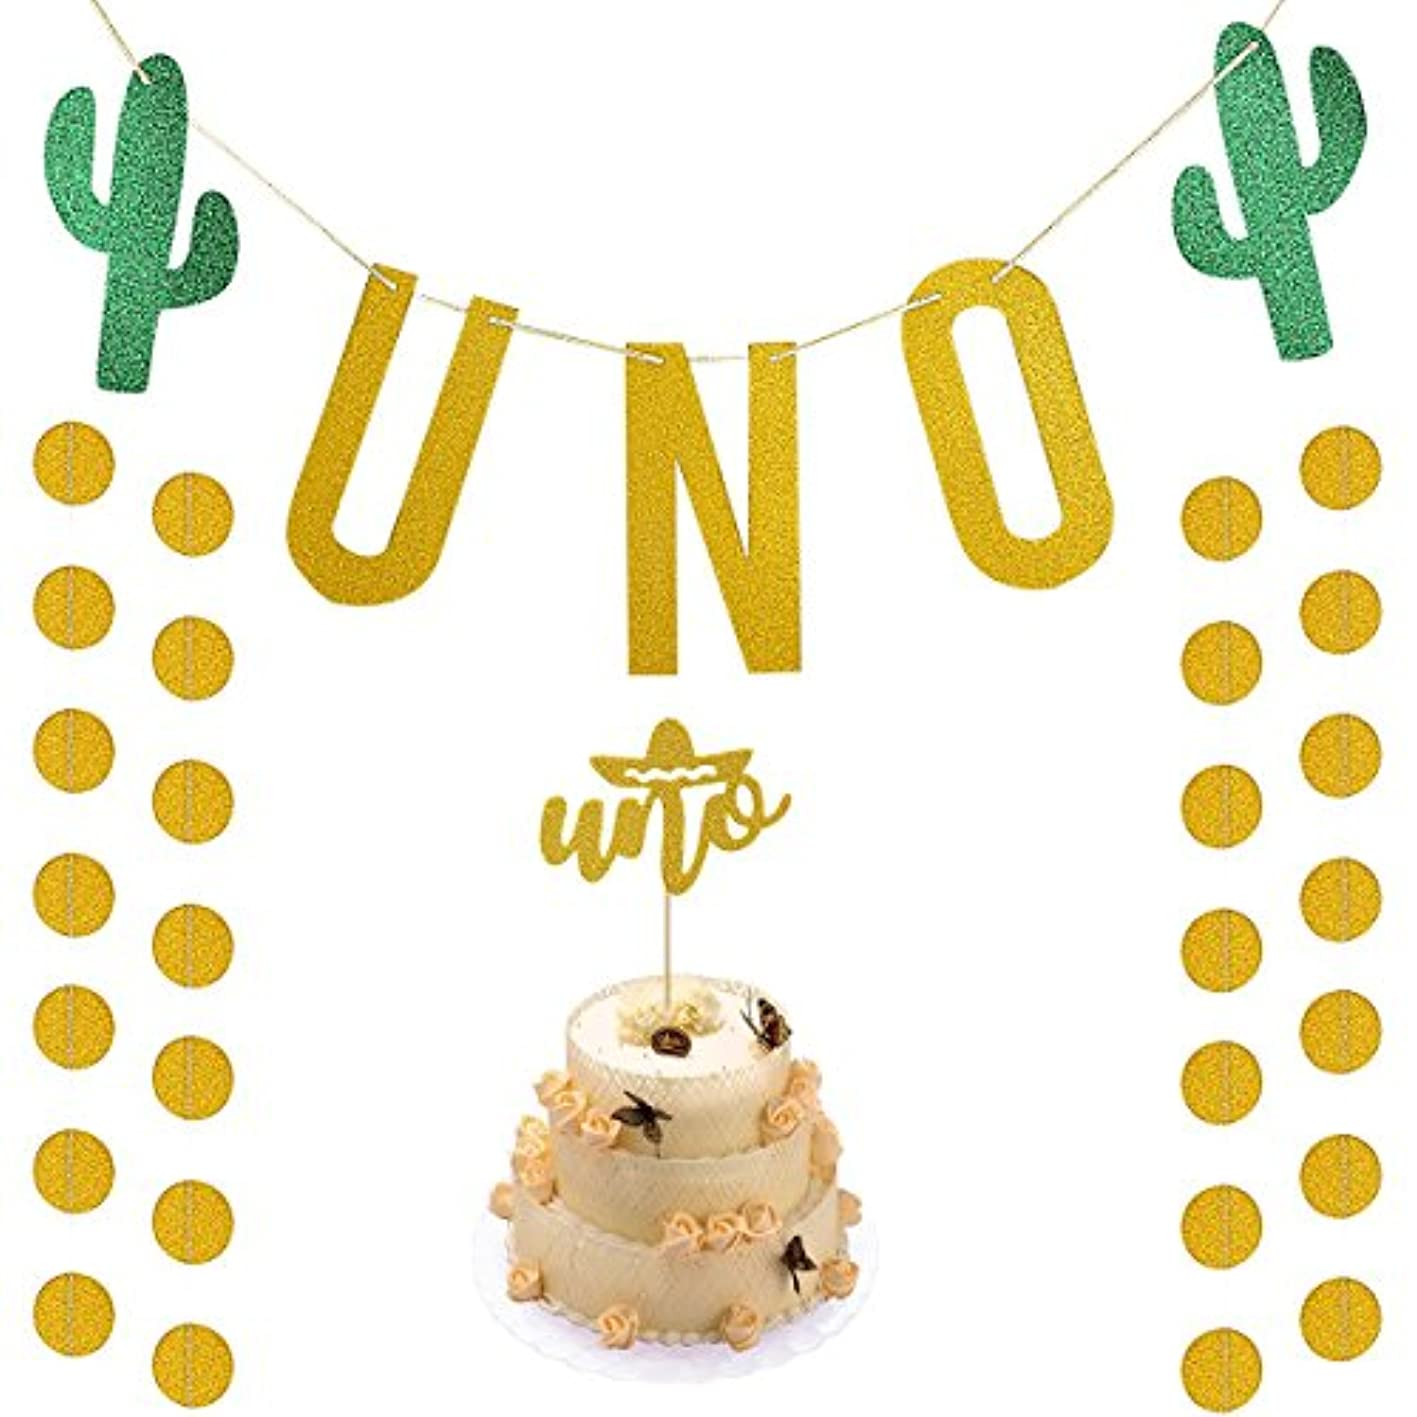 Gold Glittery UNO Fiesta First Birthday Banner with UNO Cake Topper and Gold Glittery Circle Dots Garland,Fiesta Cactus Taco Party Decoration Supplies xxvmdjkdhkj066